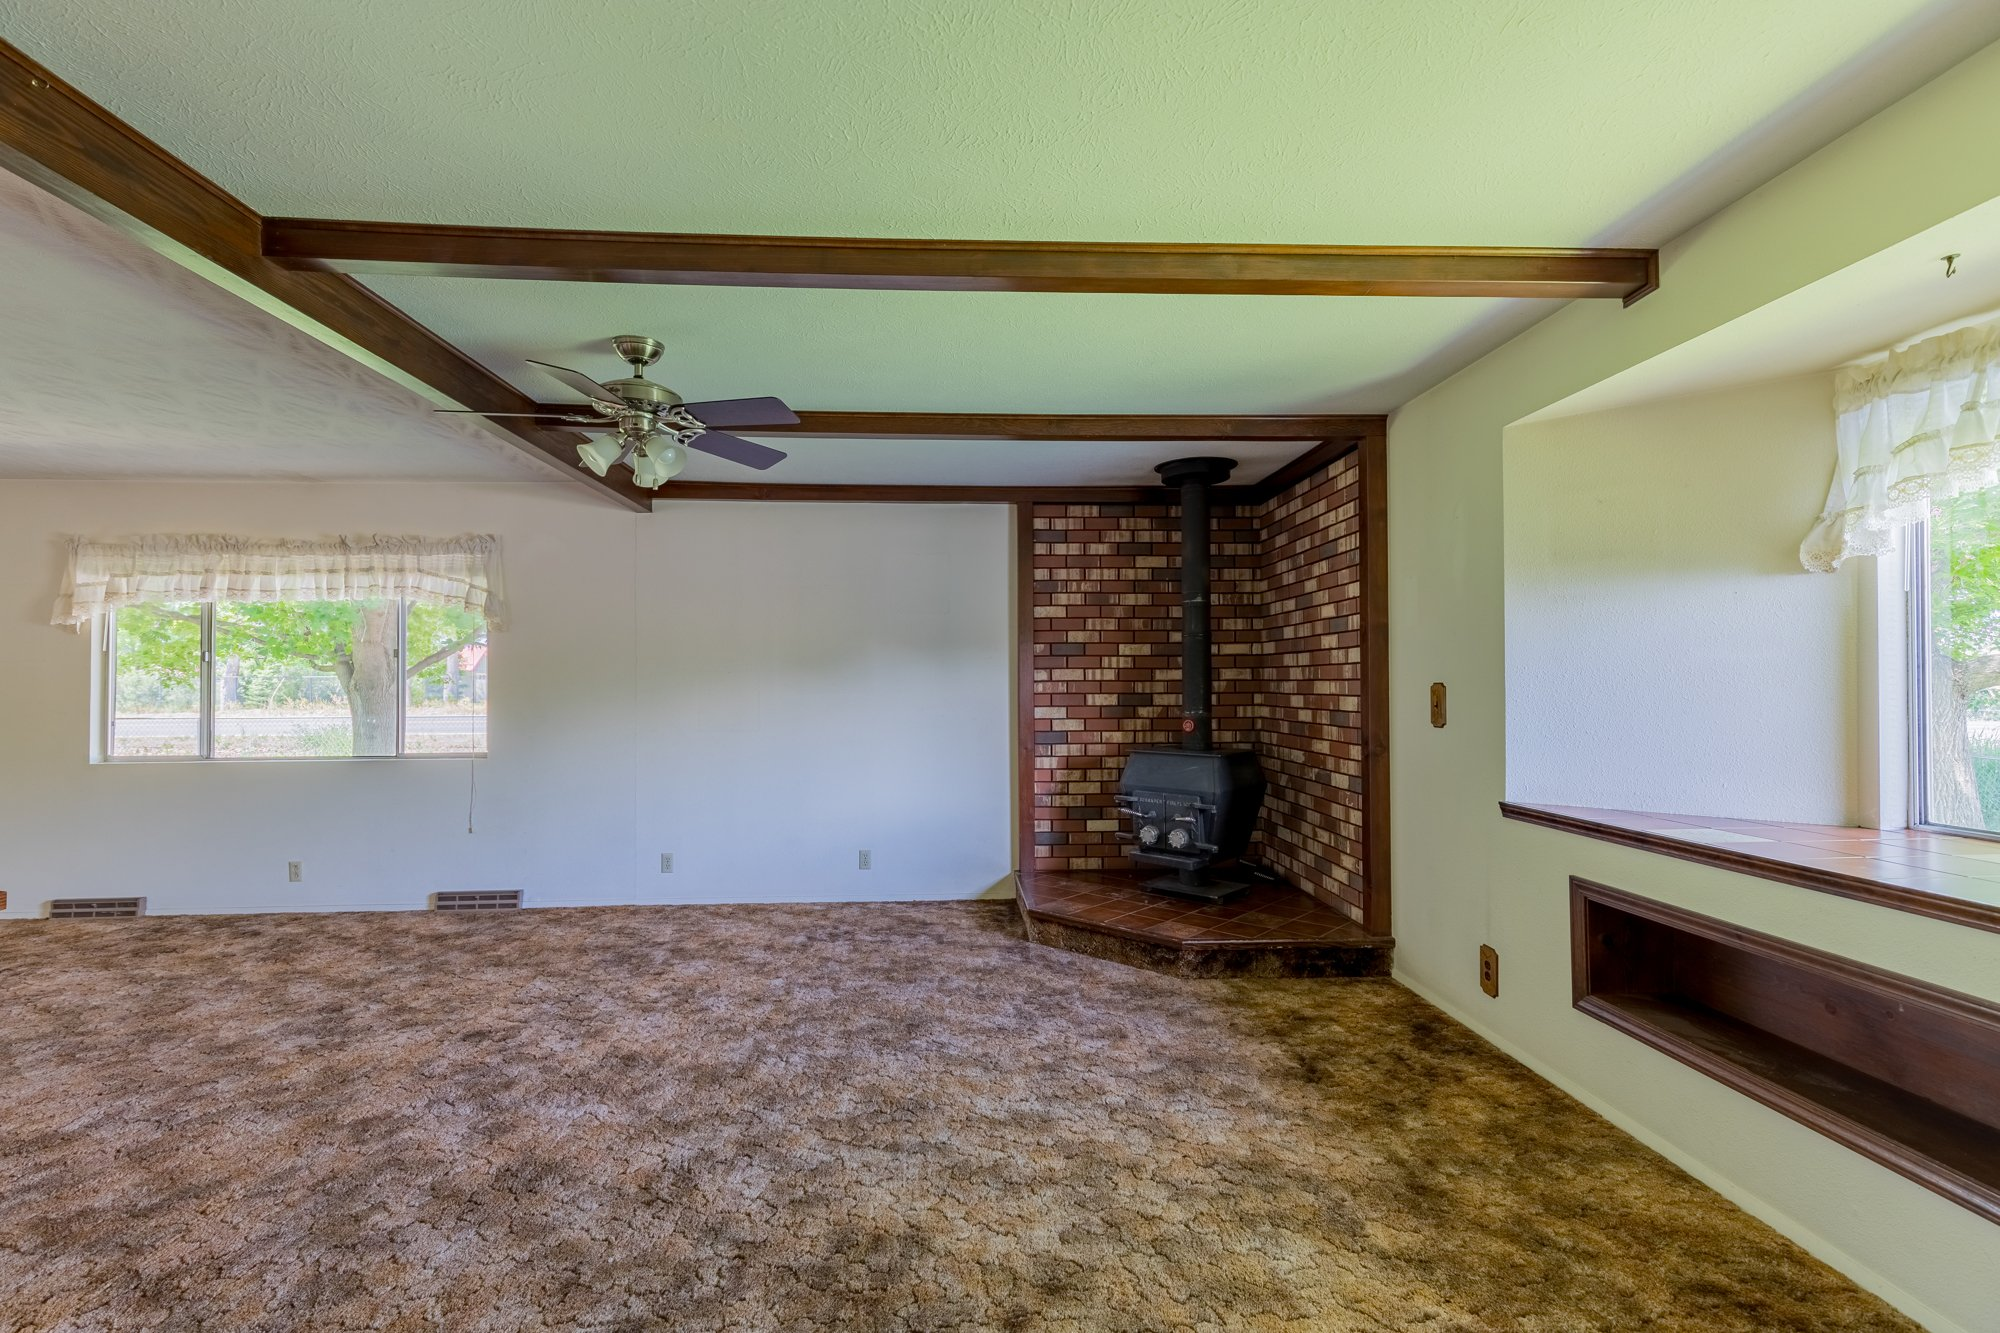 Living Room with Wood Burning Stove - 418 6400 Rd Montrose, CO 81403 - Atha Team Realty